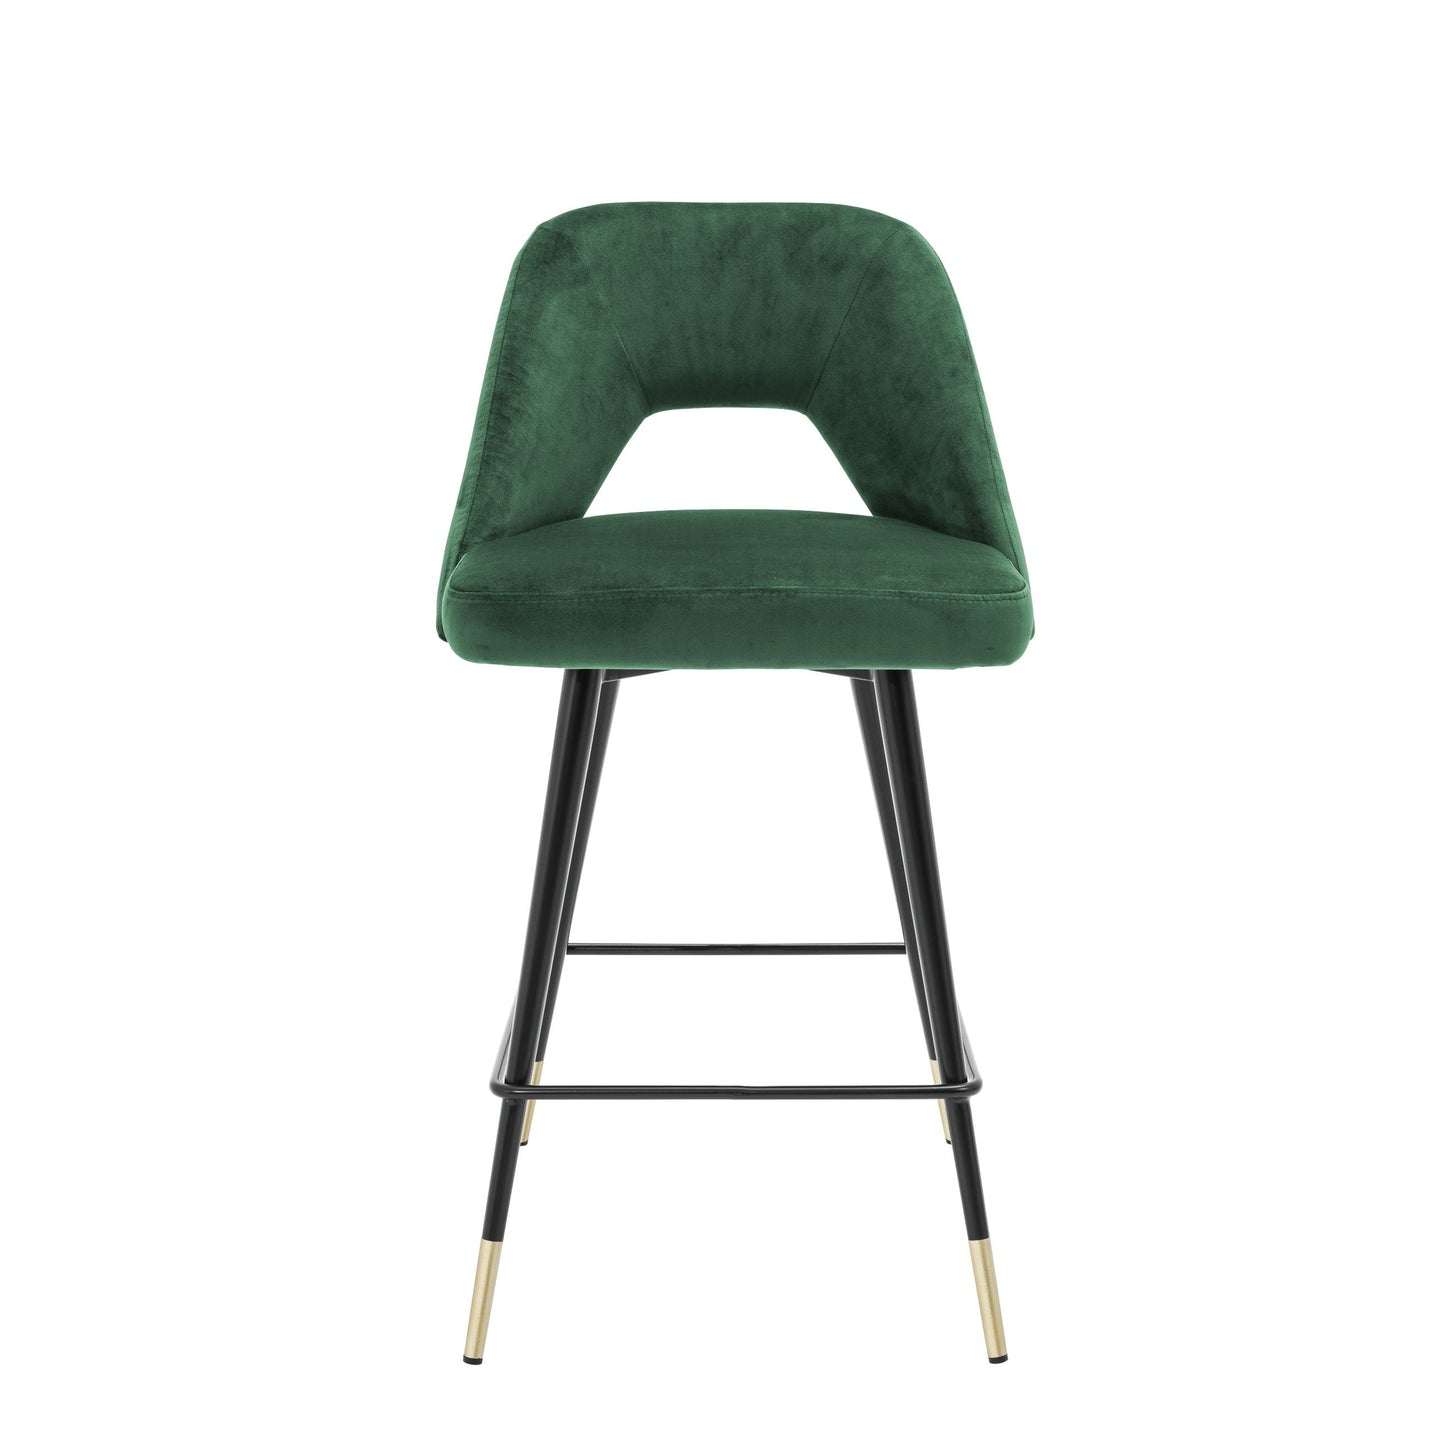 Avorio Bar Stool - Green Velvet